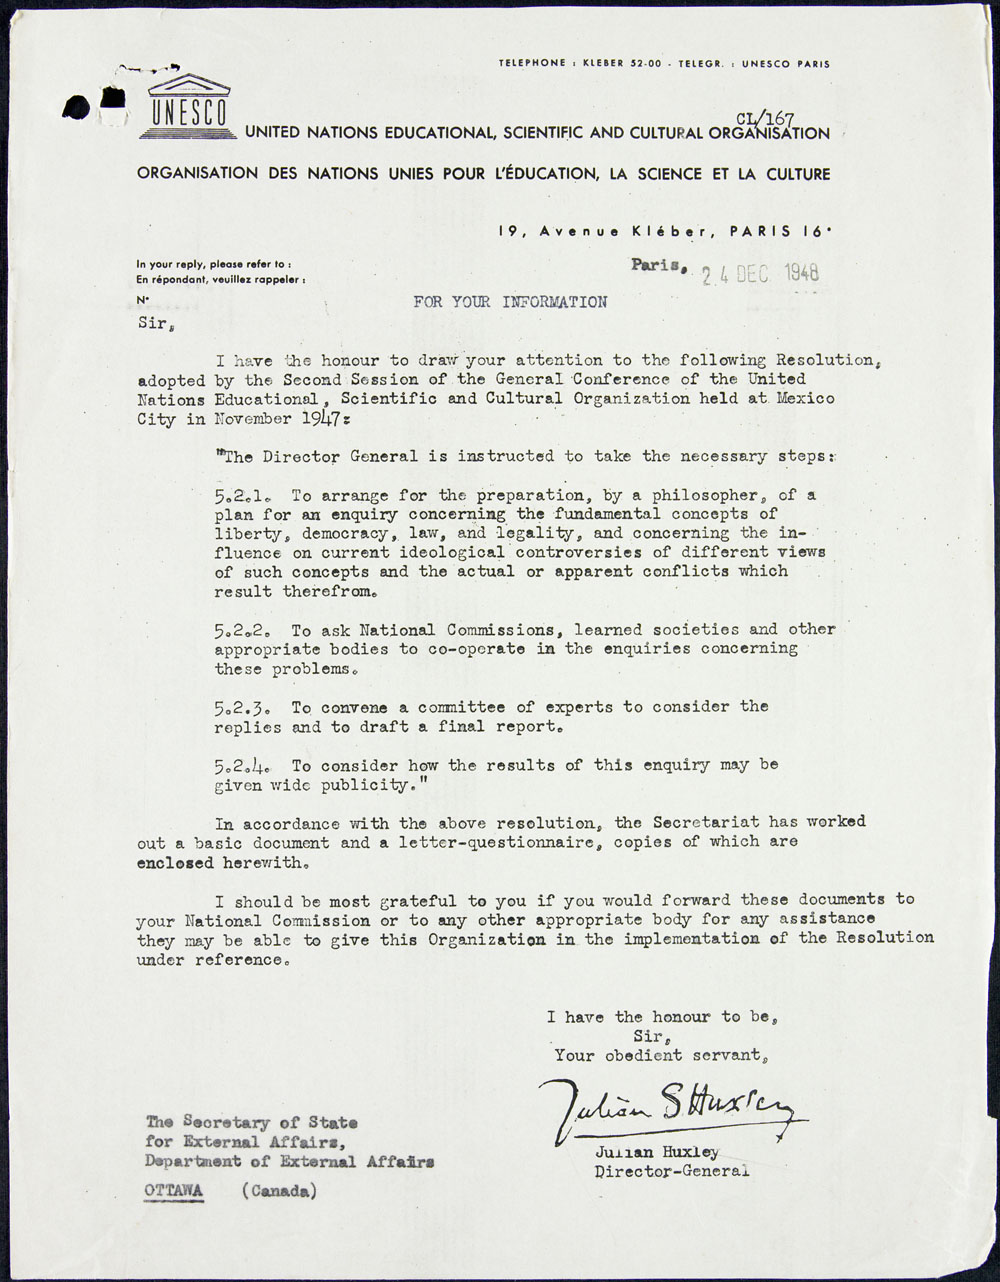 Letter describing a resolution by the United Nations Educational, Scientific and Cultural Organization, calling for an enquiry concerning the fundamental concepts of liberty, democracy, law, and legality, December 24, 1948